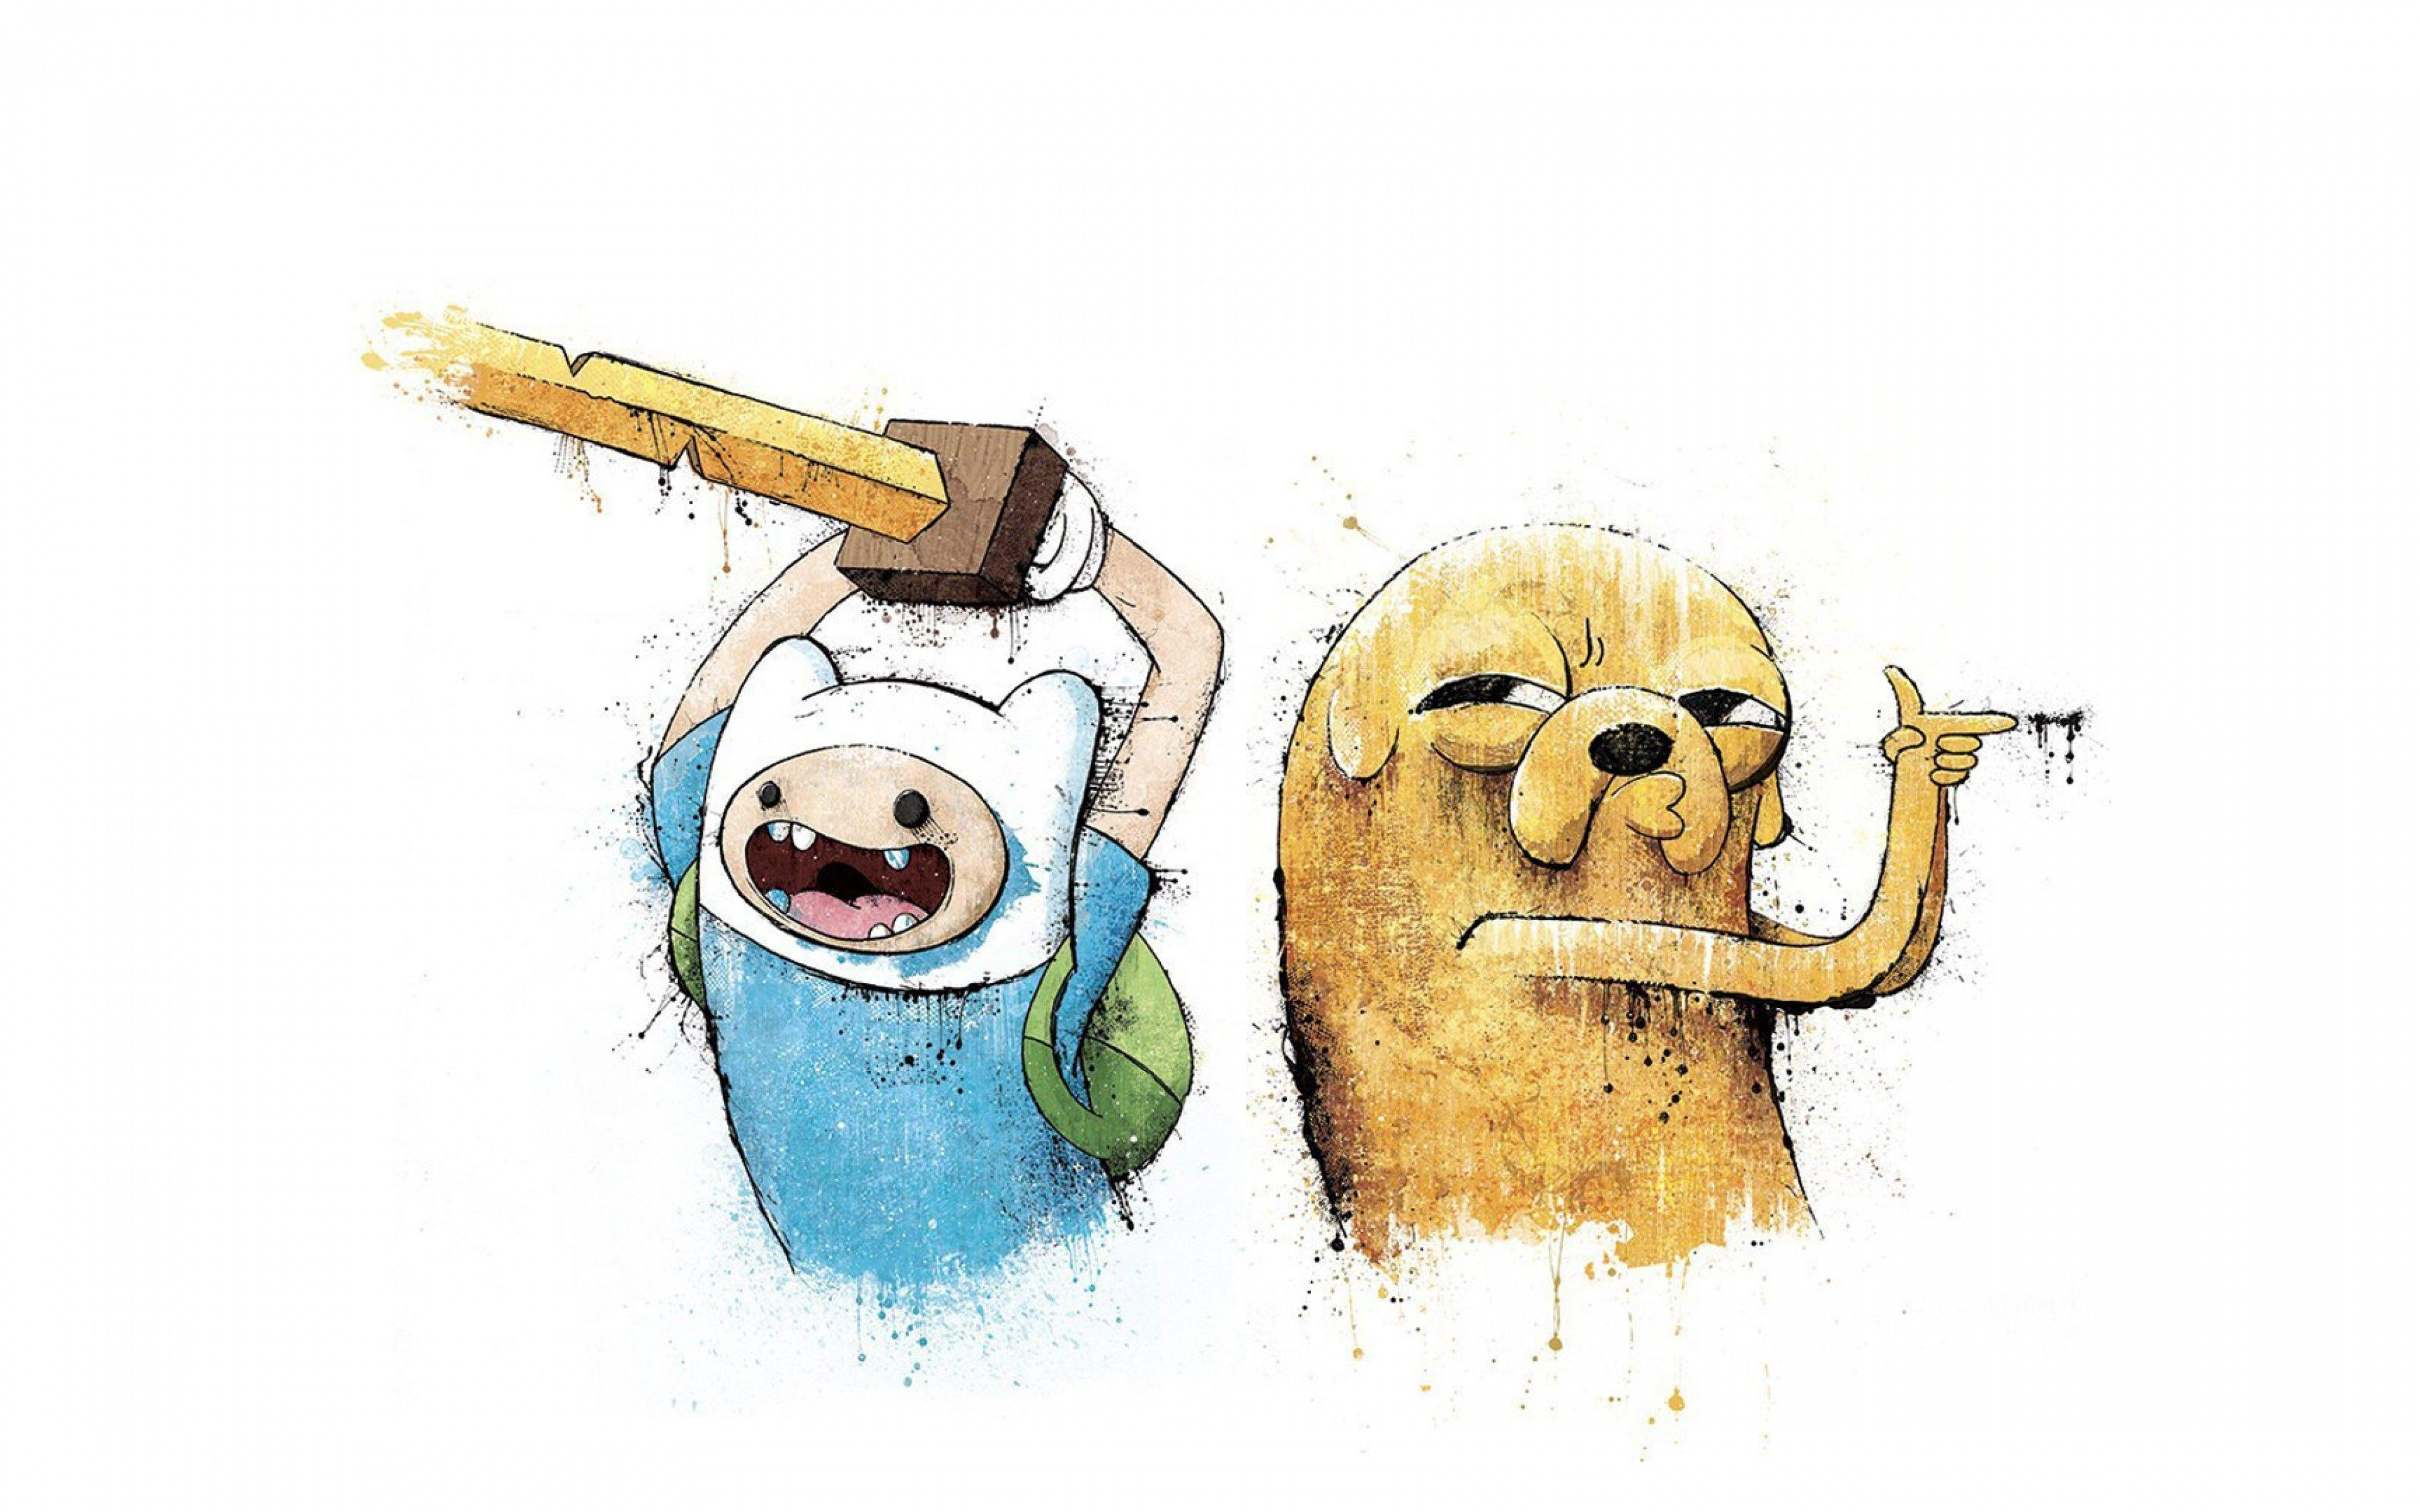 Adventure Time wallpapers ·① Download free beautiful High Resolution